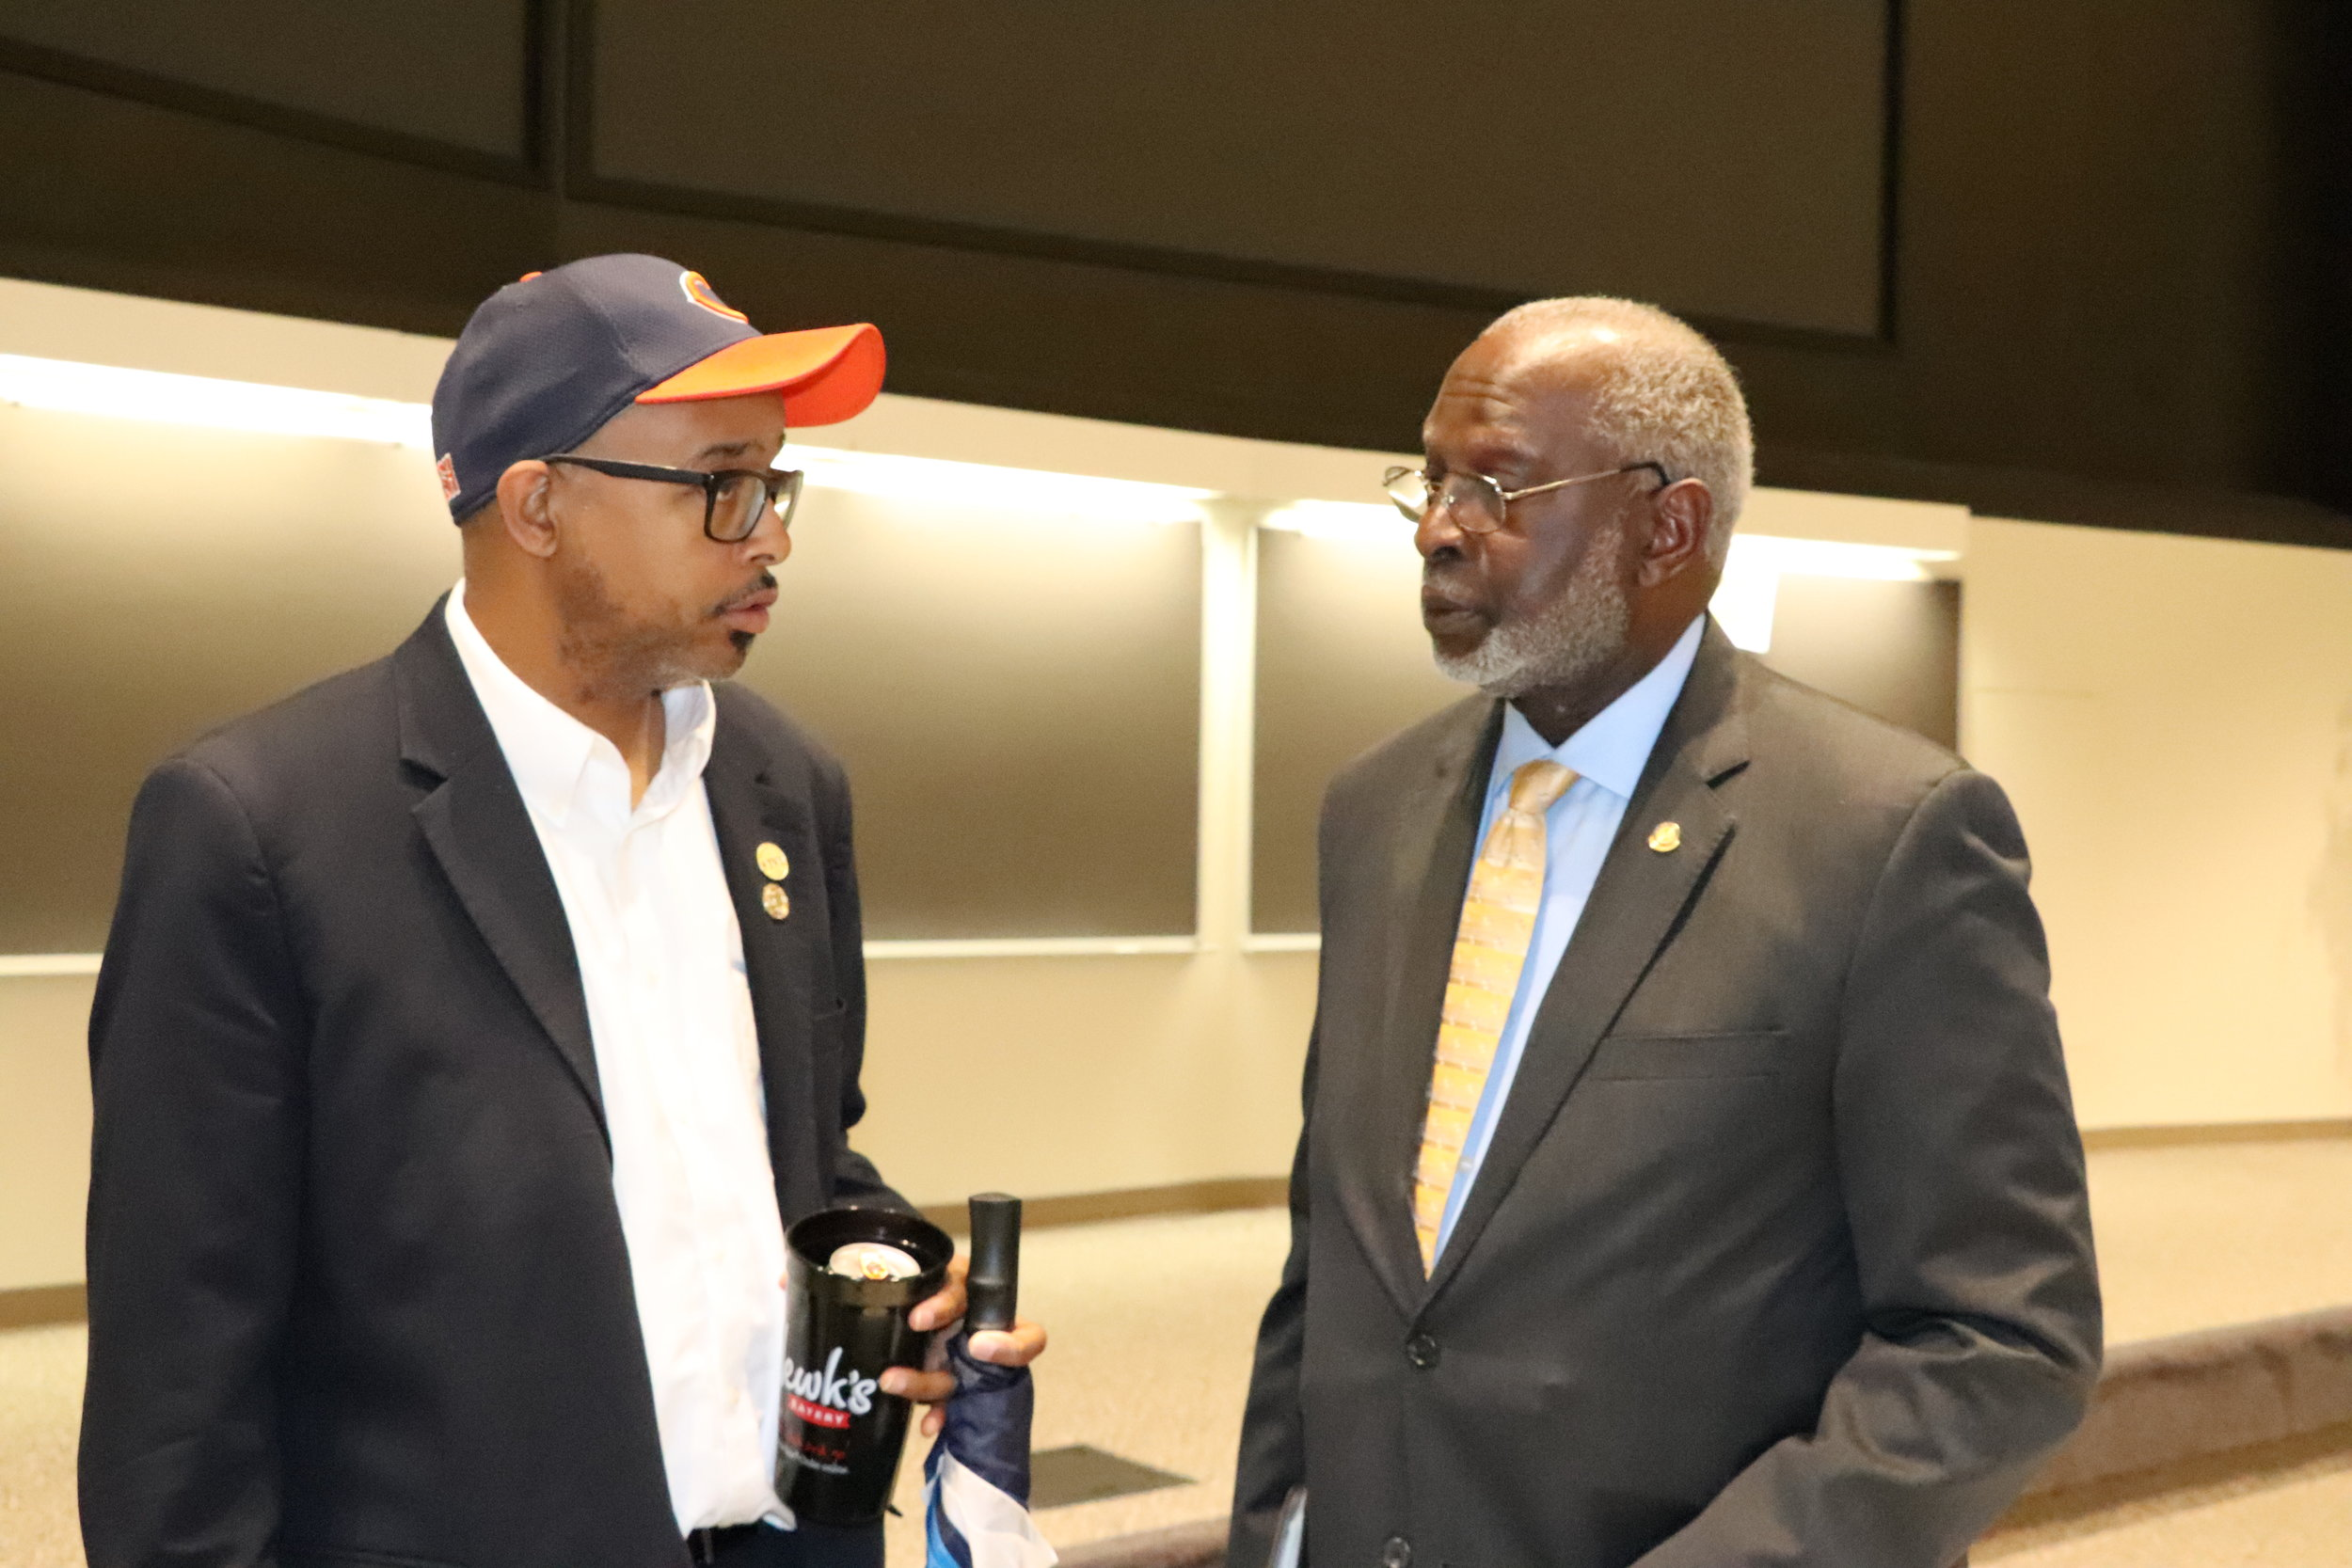 Dr. Satcher chats with a local pastor after the lecture